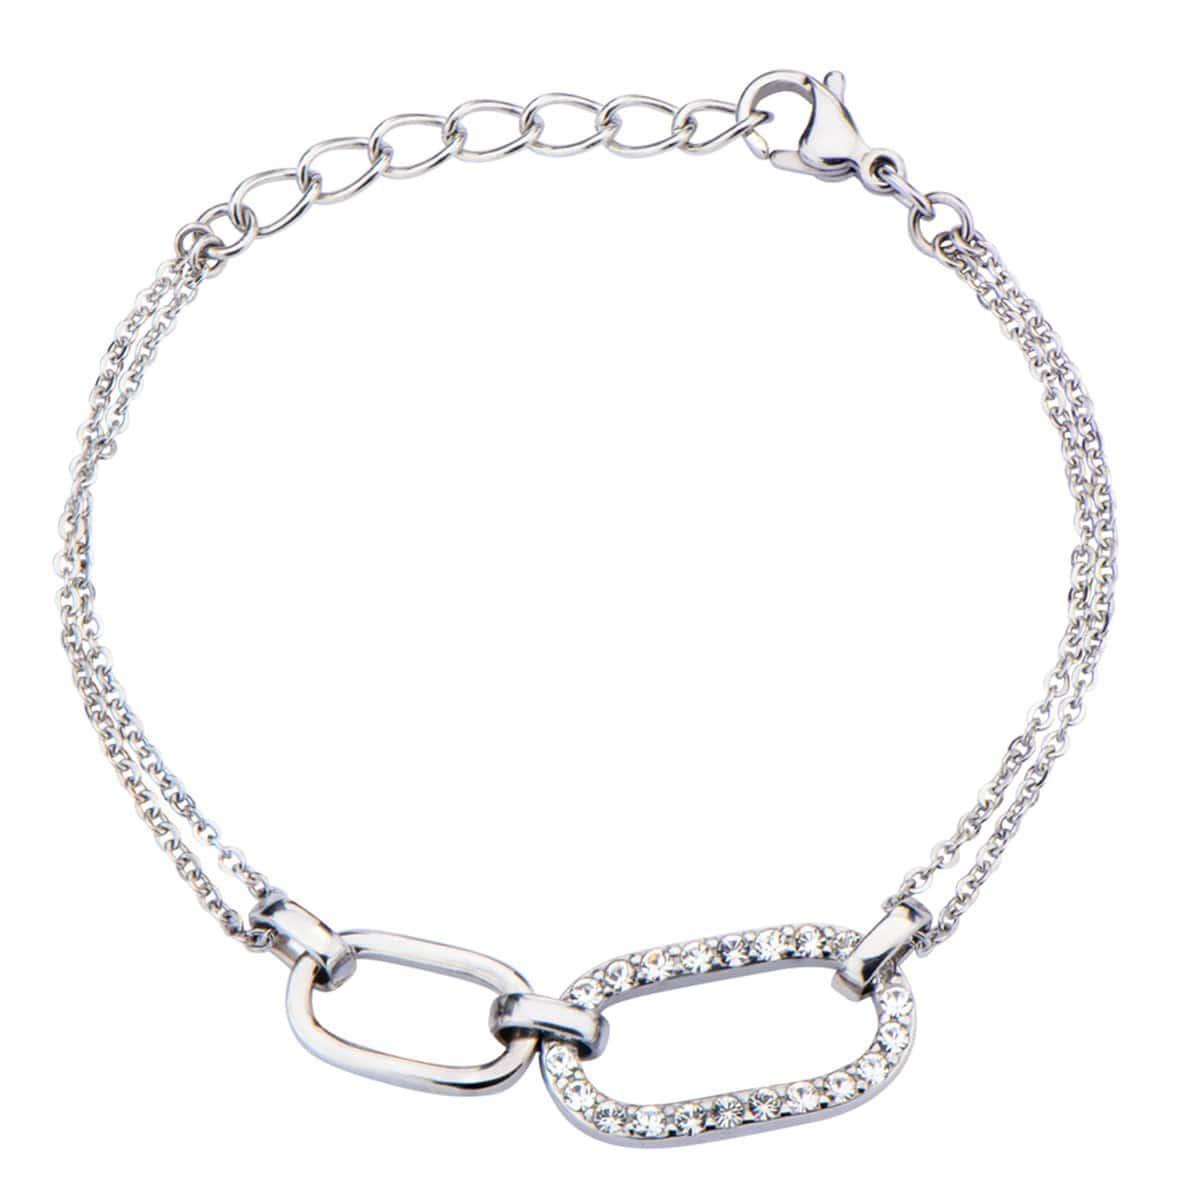 Silver Stainless Steel Two Oval CZ Bracelet